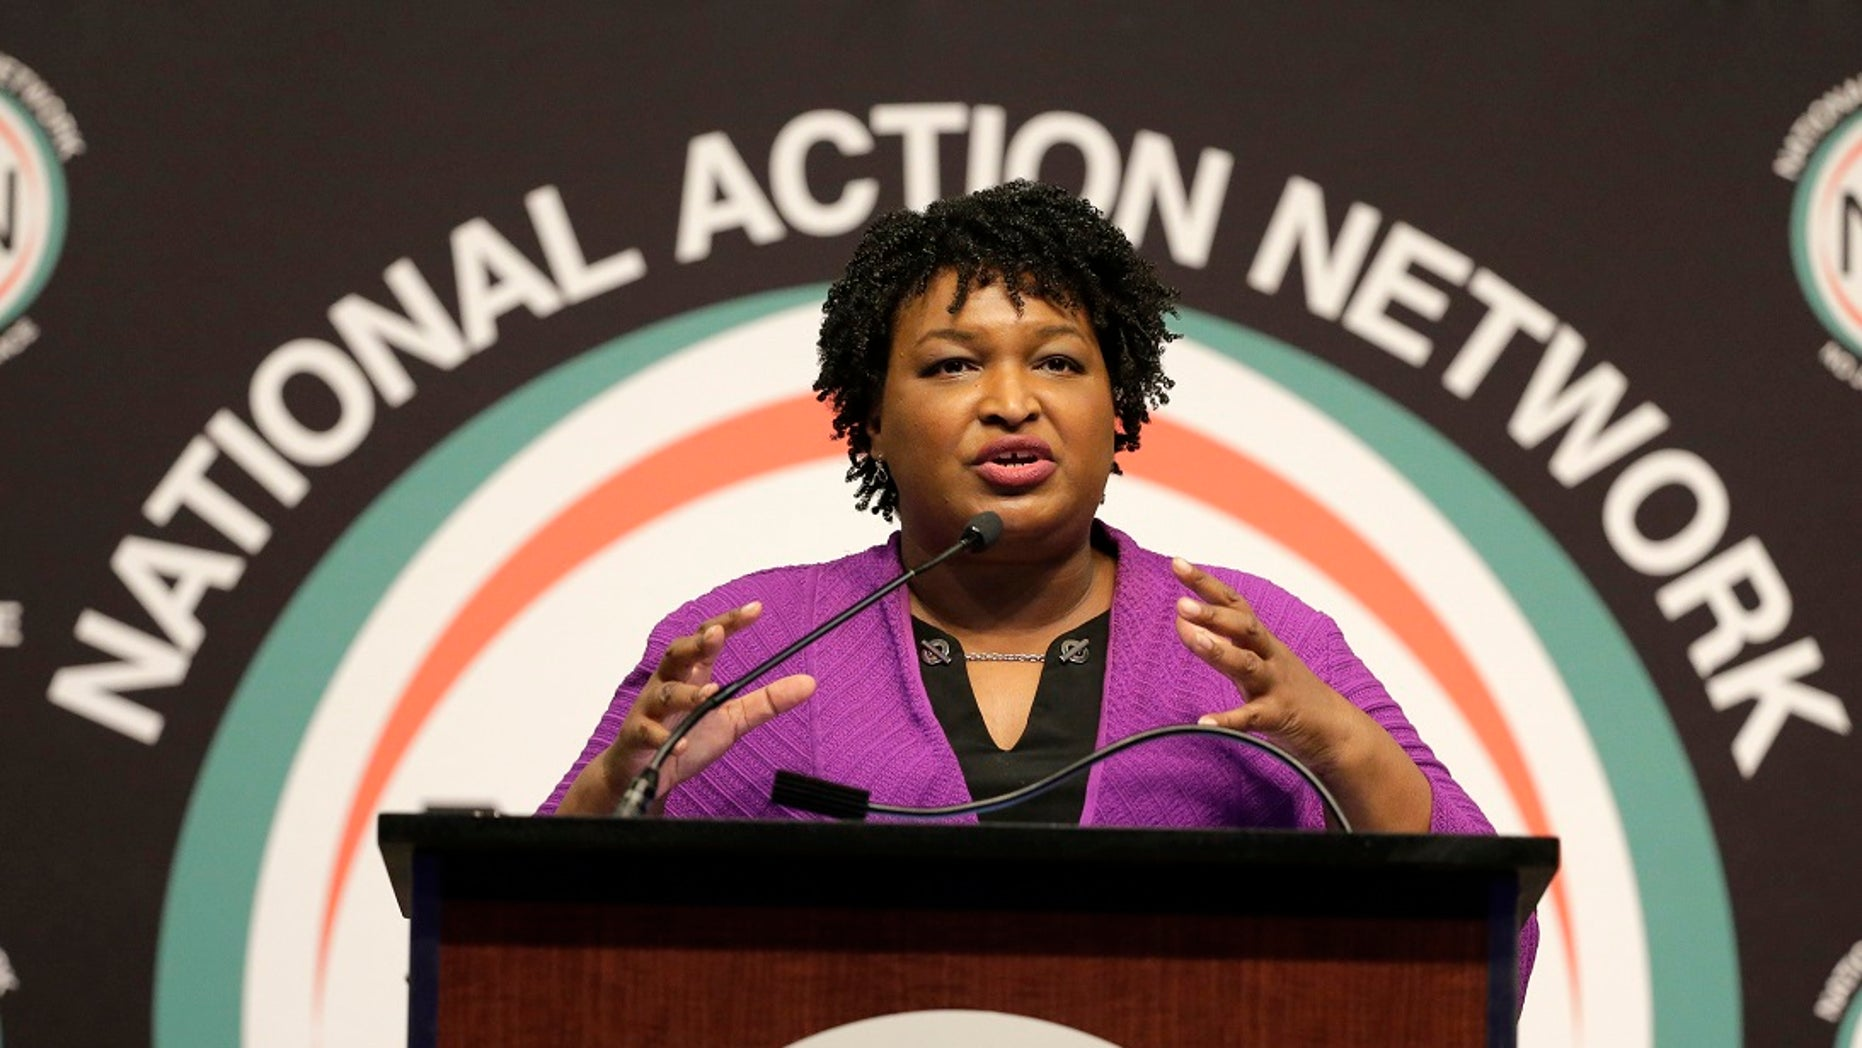 Former Georgia gubernatorial candidate Stacey Abrams speaks during the National Action Network Convention in New York City, April 3, 2019. (Associated Press)